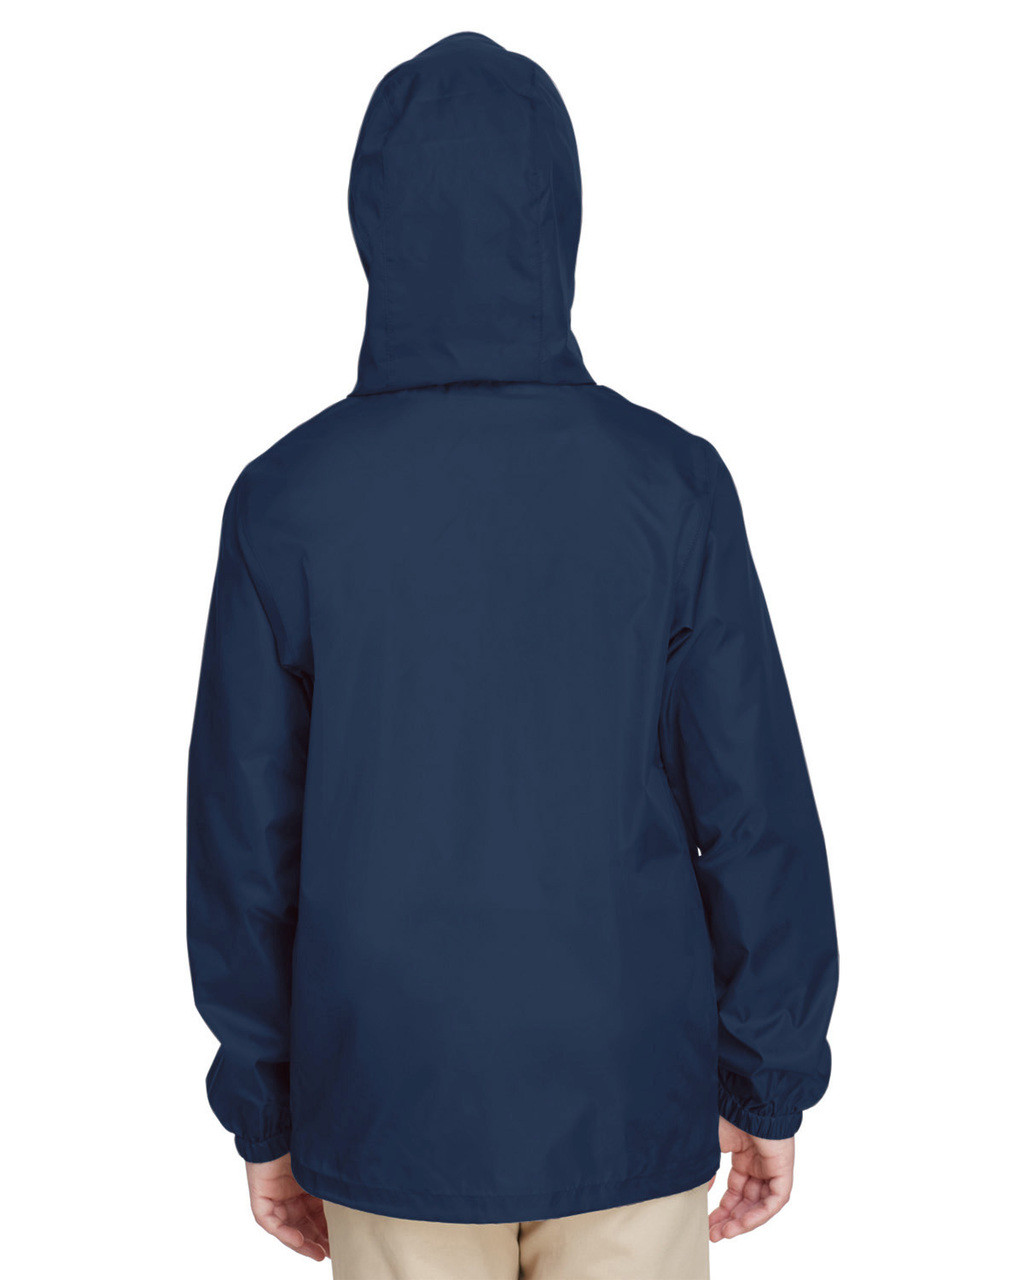 Sport Dark Navy, Back - TT73Y Team 365 Youth Zone Protect Lightweight Jacket  | BlankClothing.ca